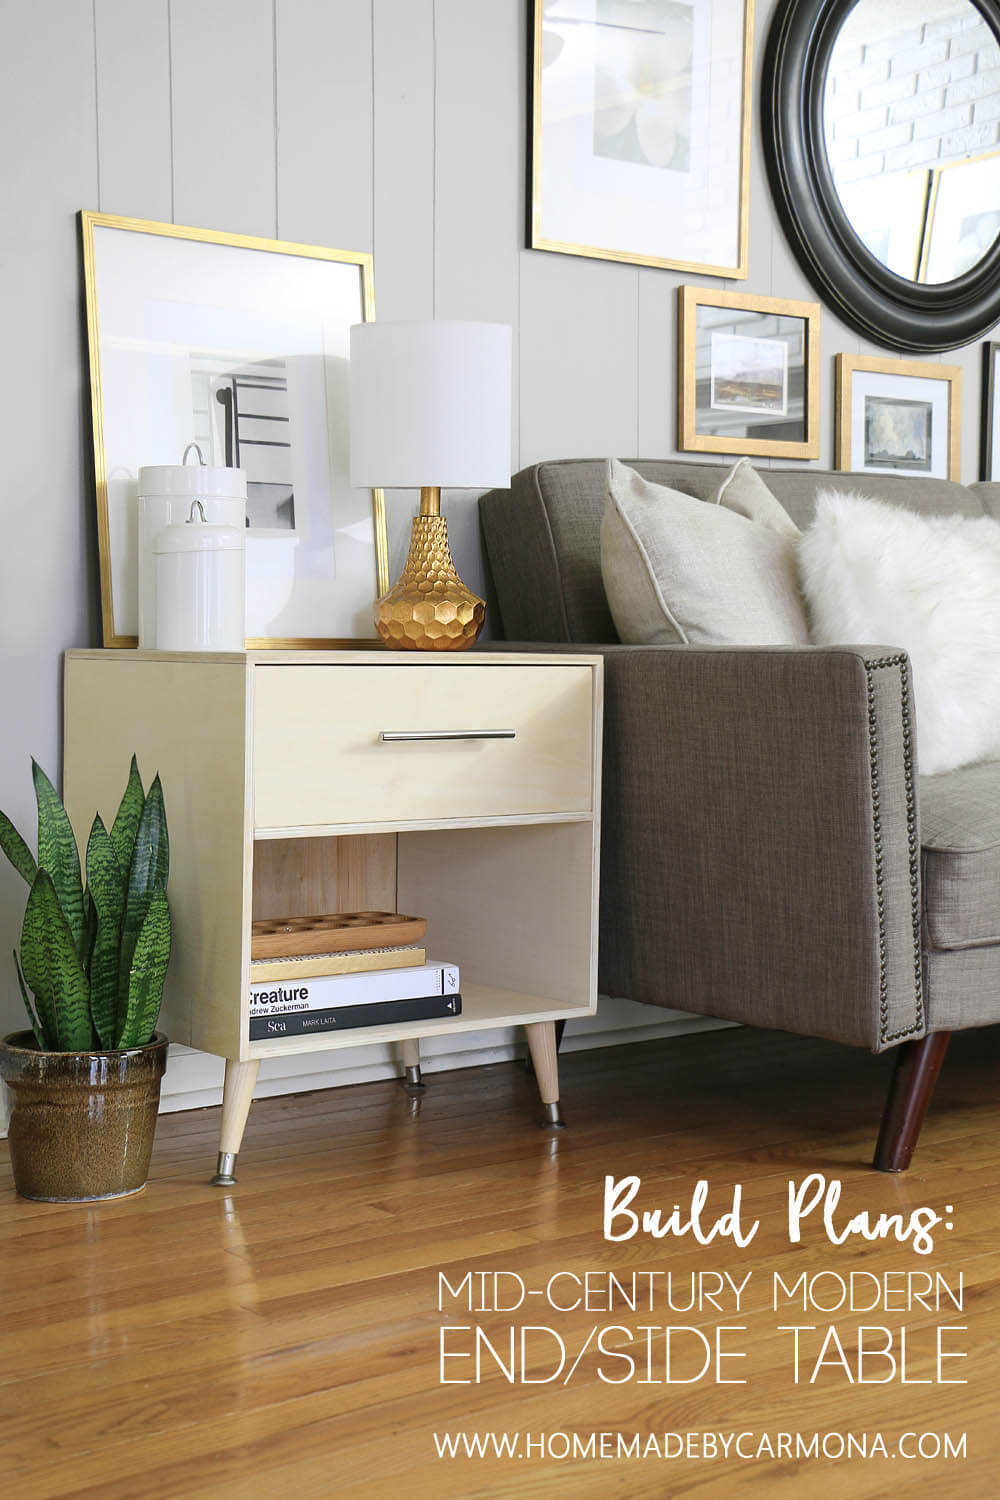 Build Plans - Mid Century Modern End Table - DIY Side Table